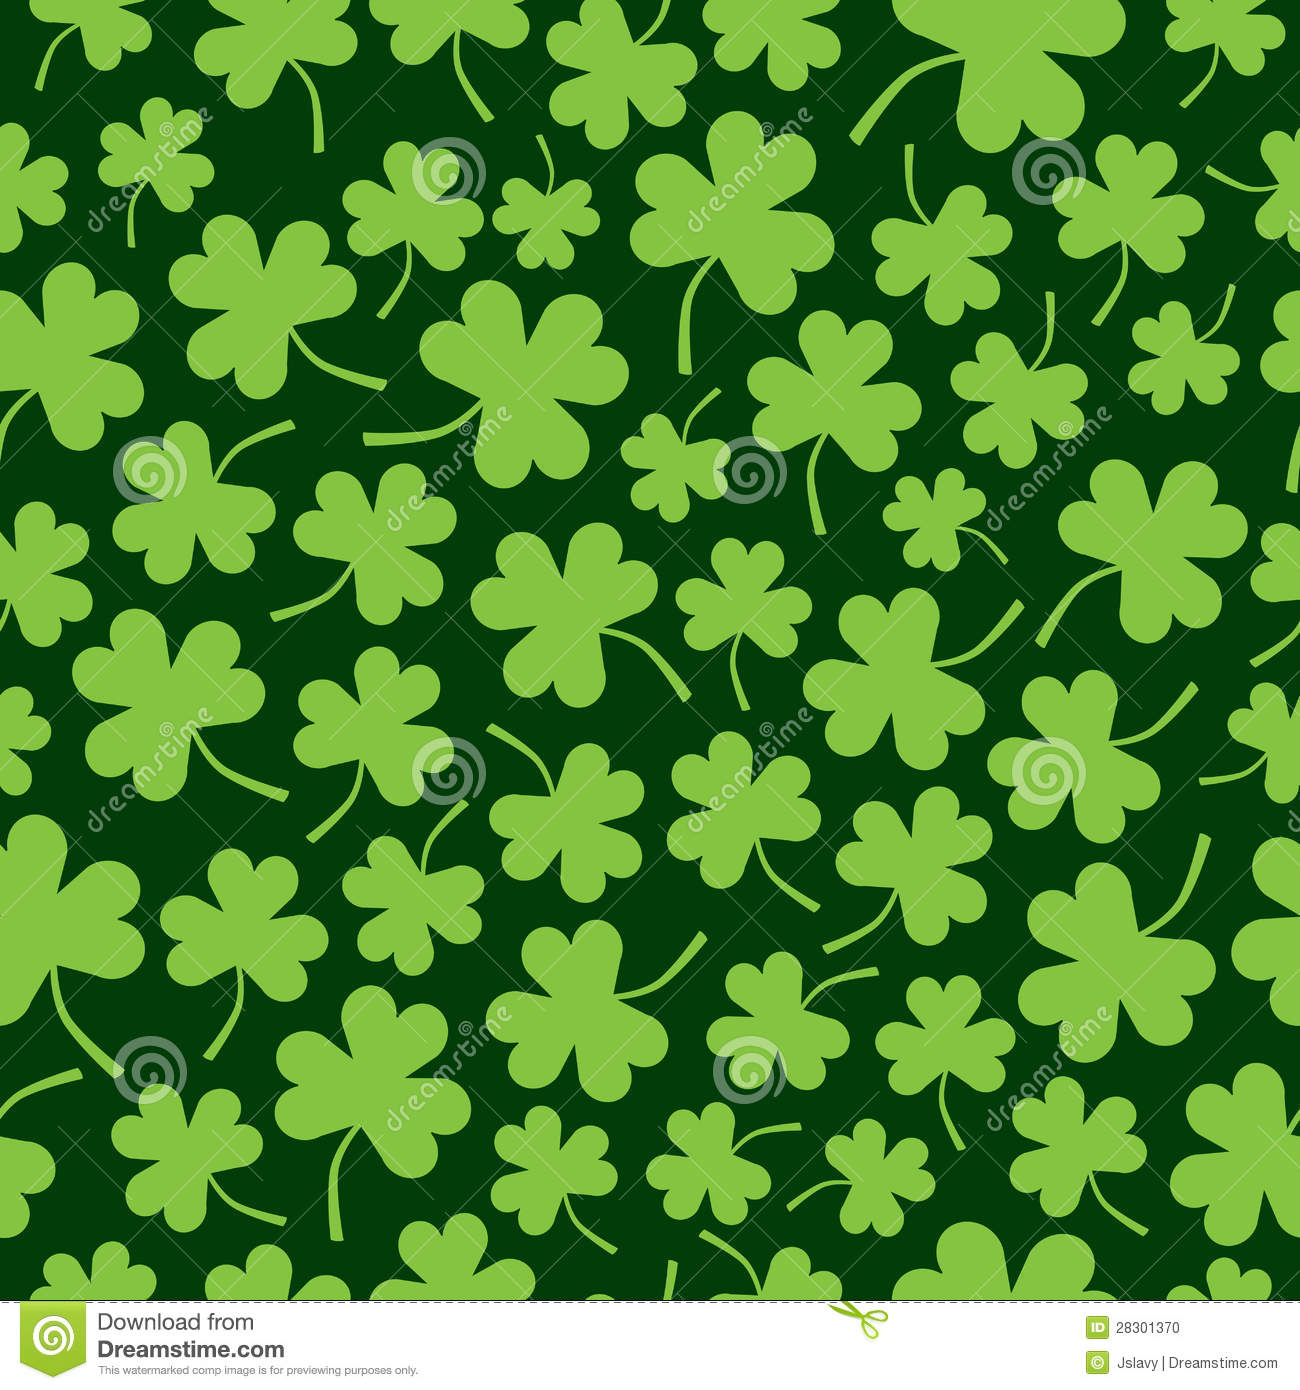 shamrock pattern wallpaper 1366x768 - photo #21